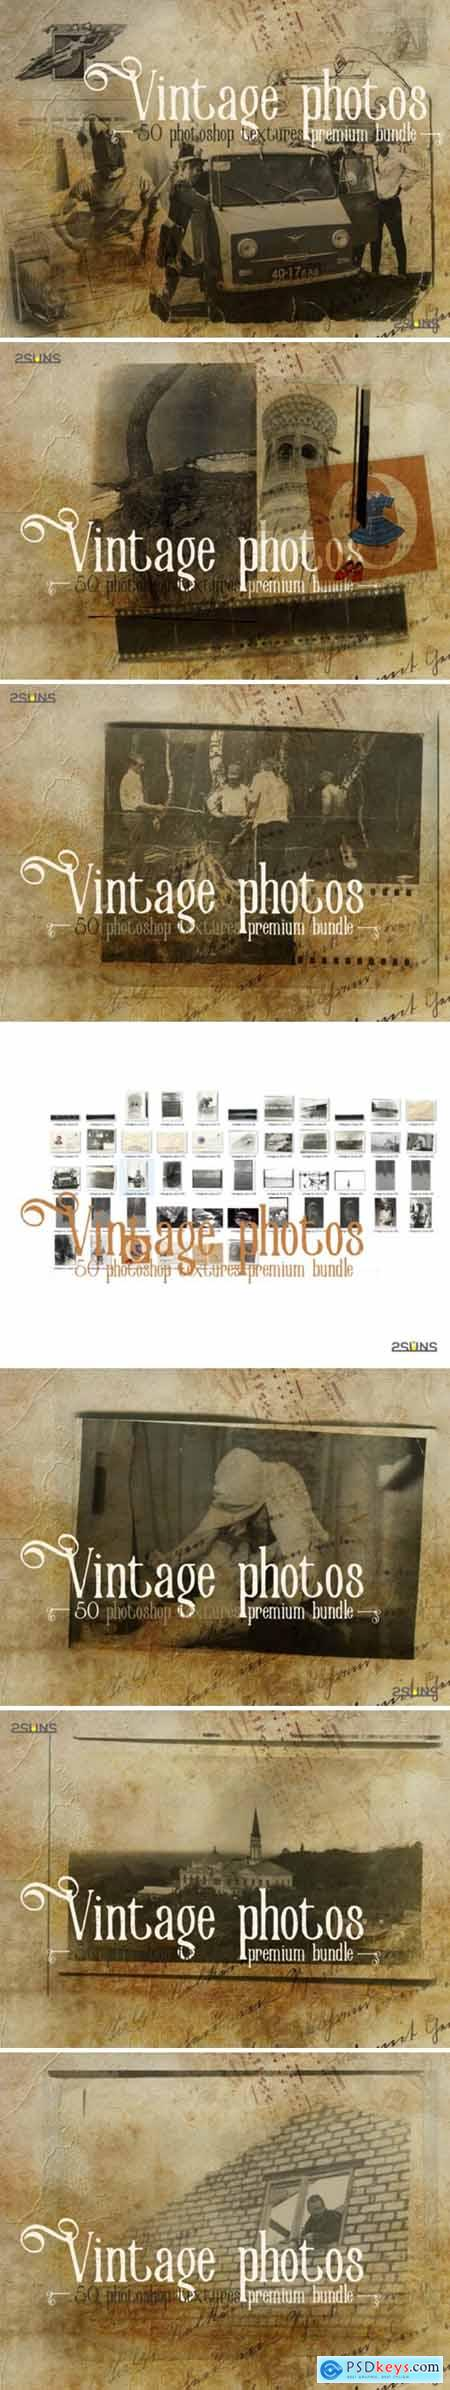 Premium Bundle Vintage Photoshop Texture 3041251